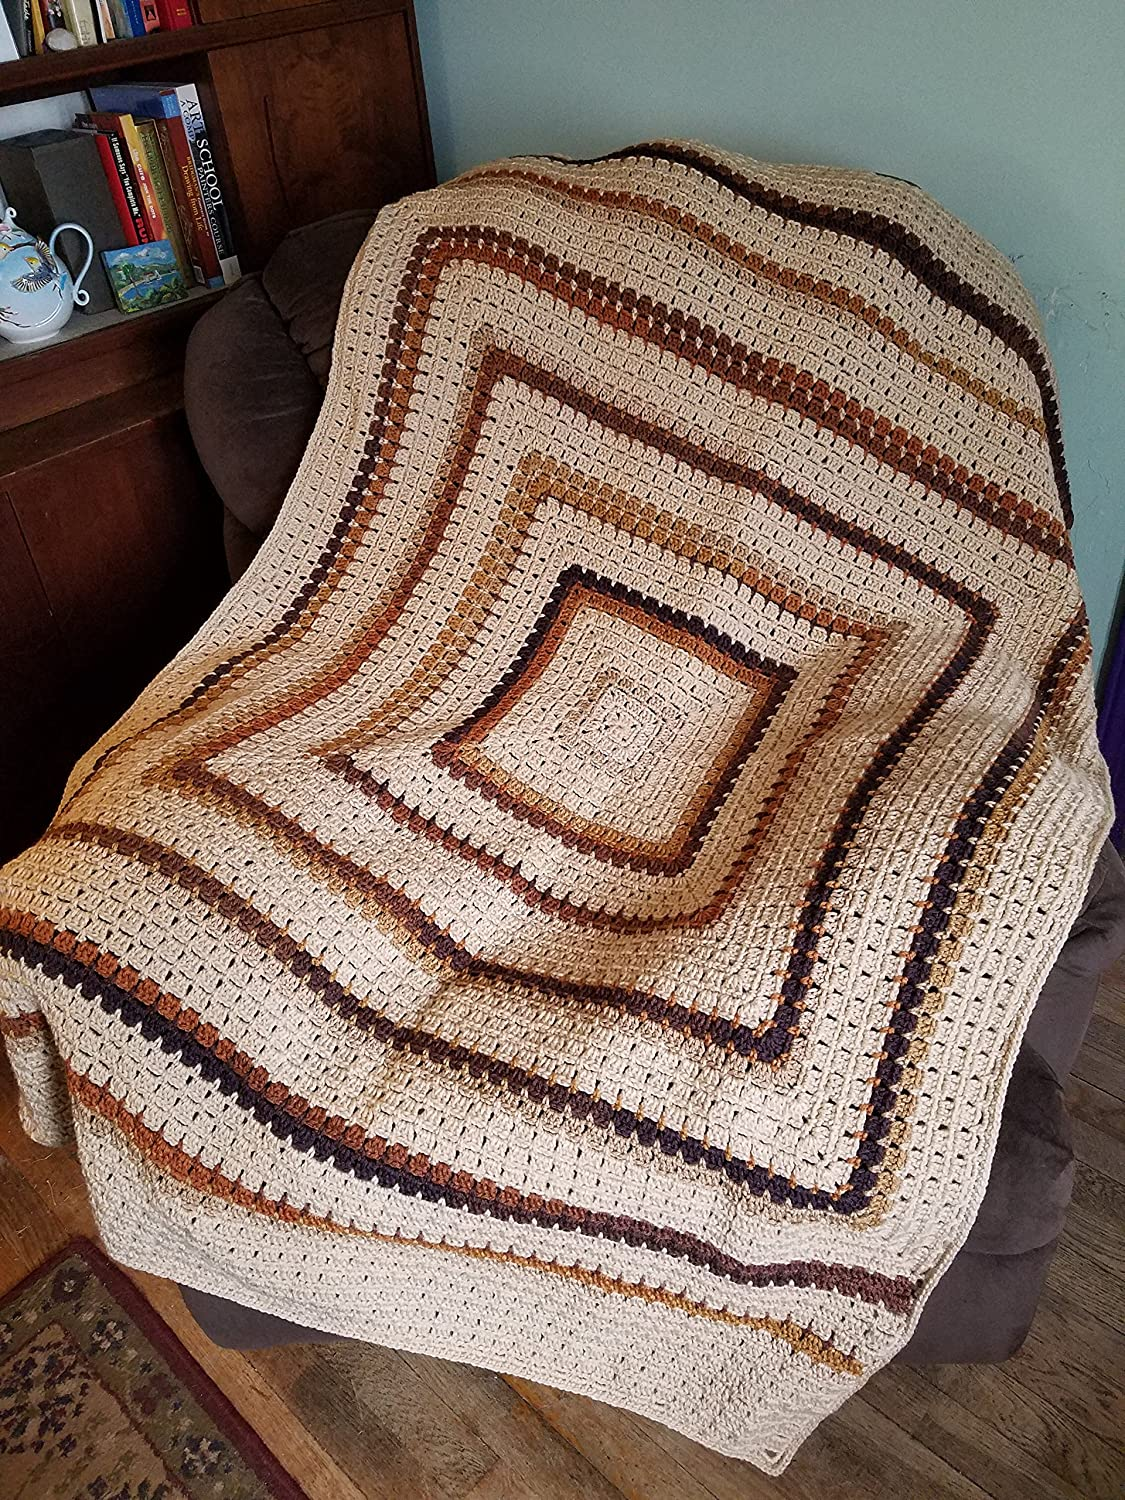 Brown, Tan, and Beige Hand Crocheted Throw - Heirloom Quality, One of a Kind